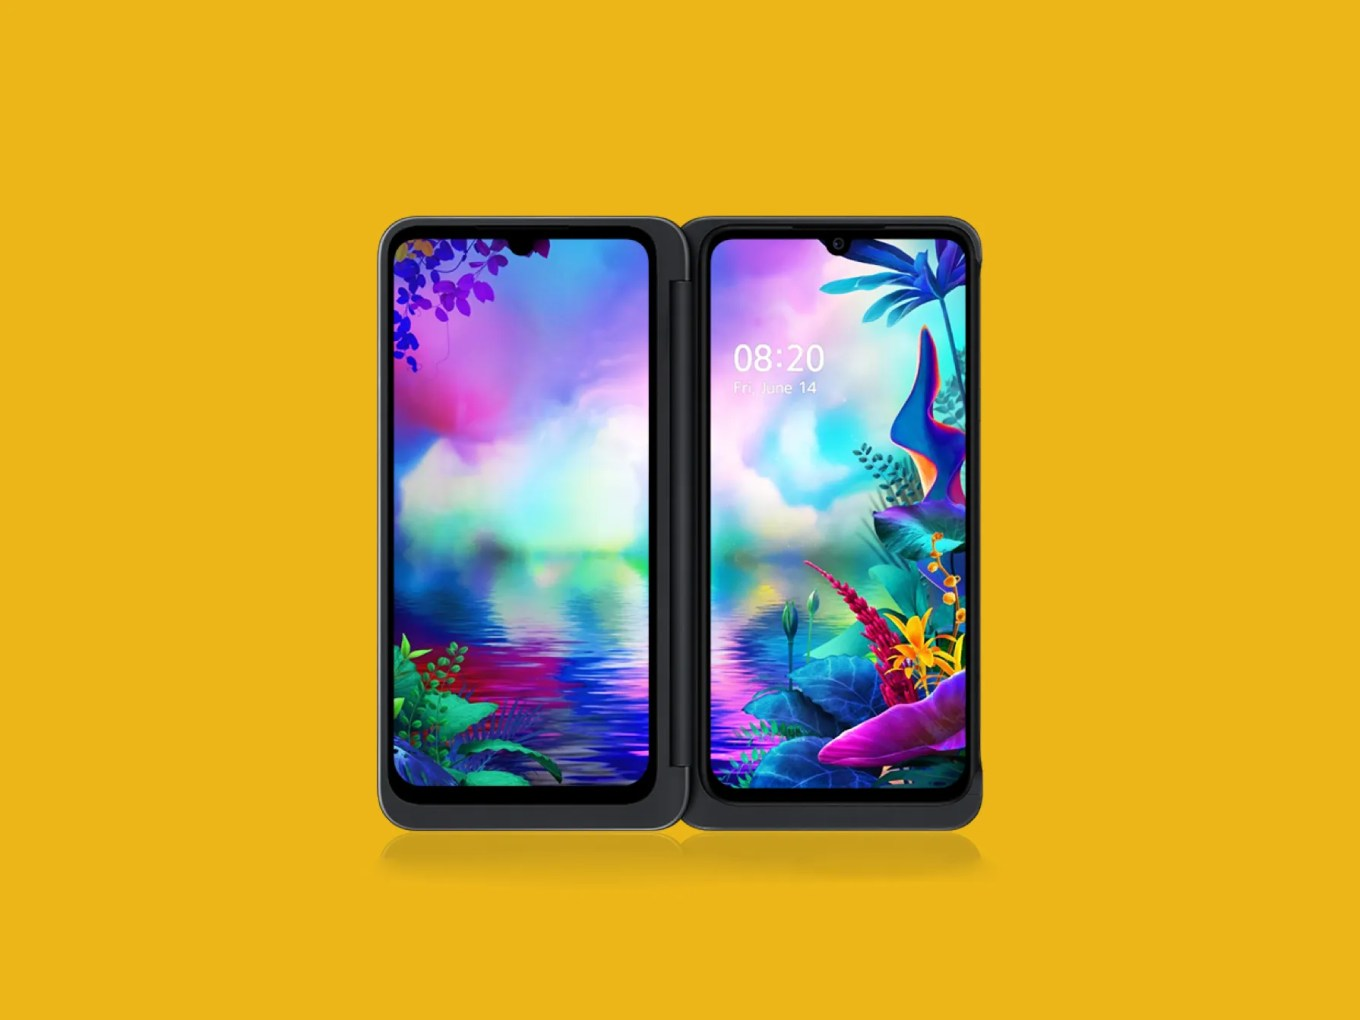 Resultado de imagen para LG G8X ThinQ with Dual Screen